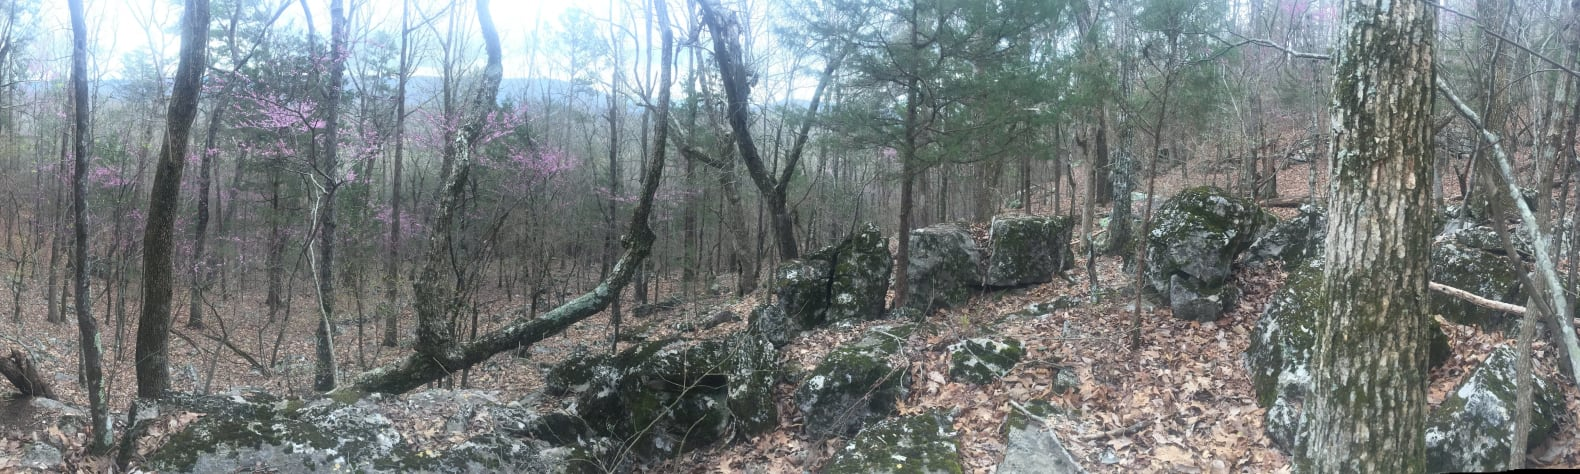 Forest at Sand Mountain